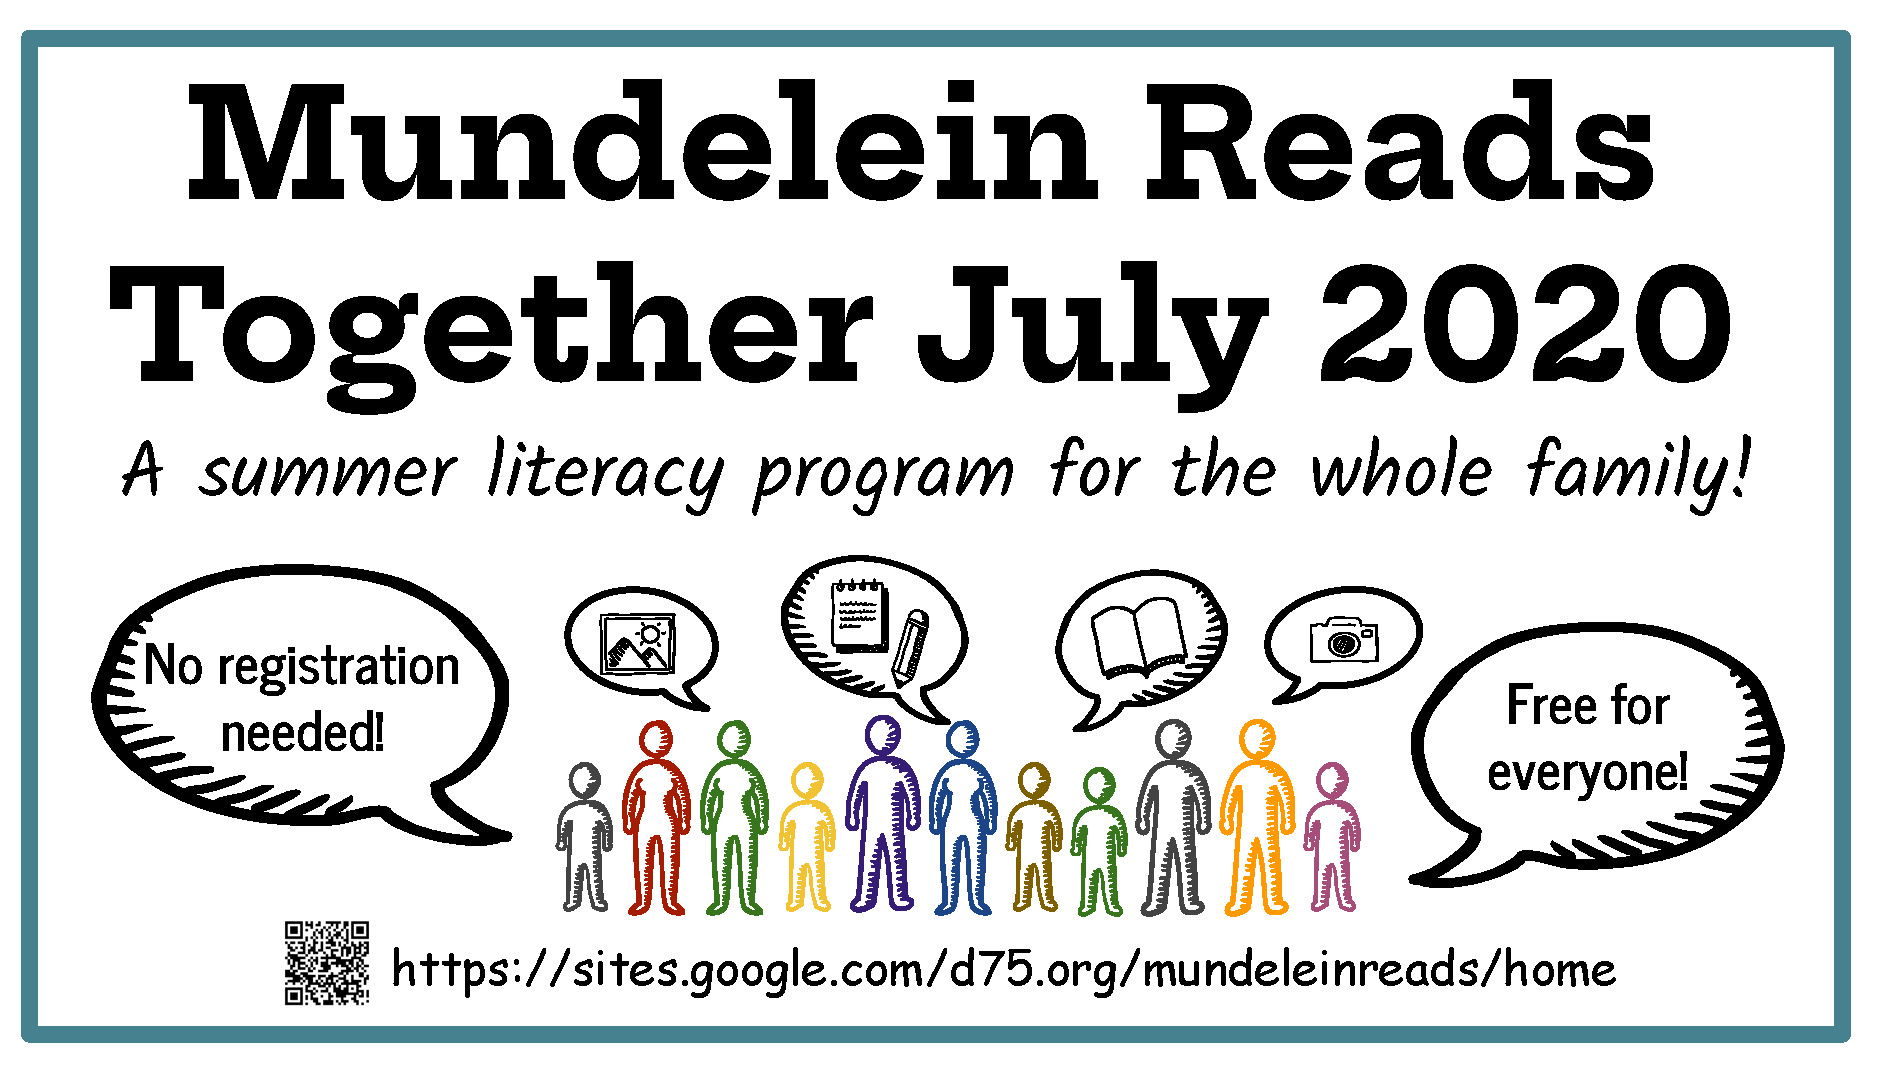 Mundelein Reading Graphic for July